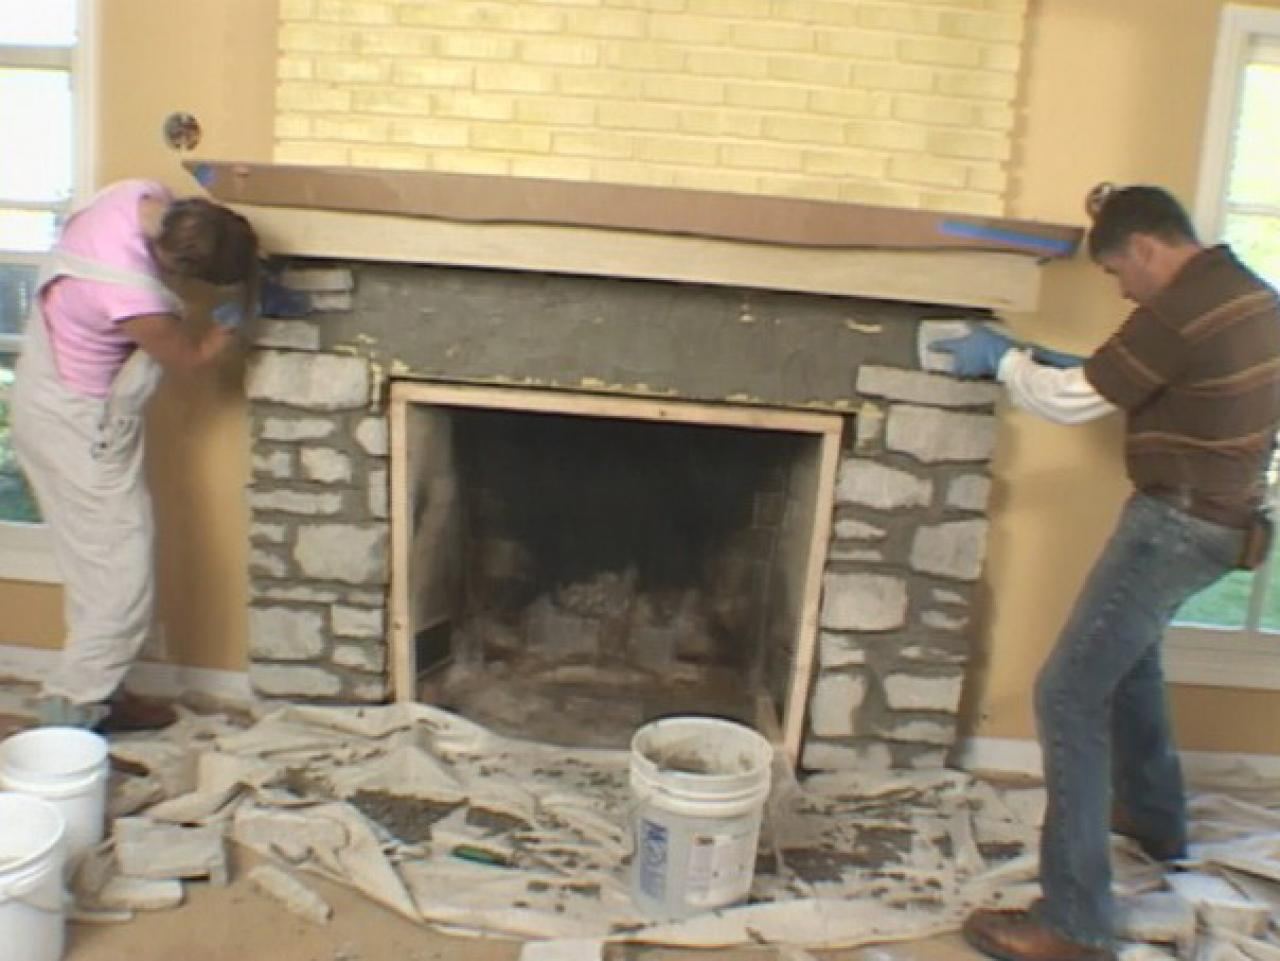 Install a Fireplace Mantel and Add Stone Veneer Facing | how-tos | DIY